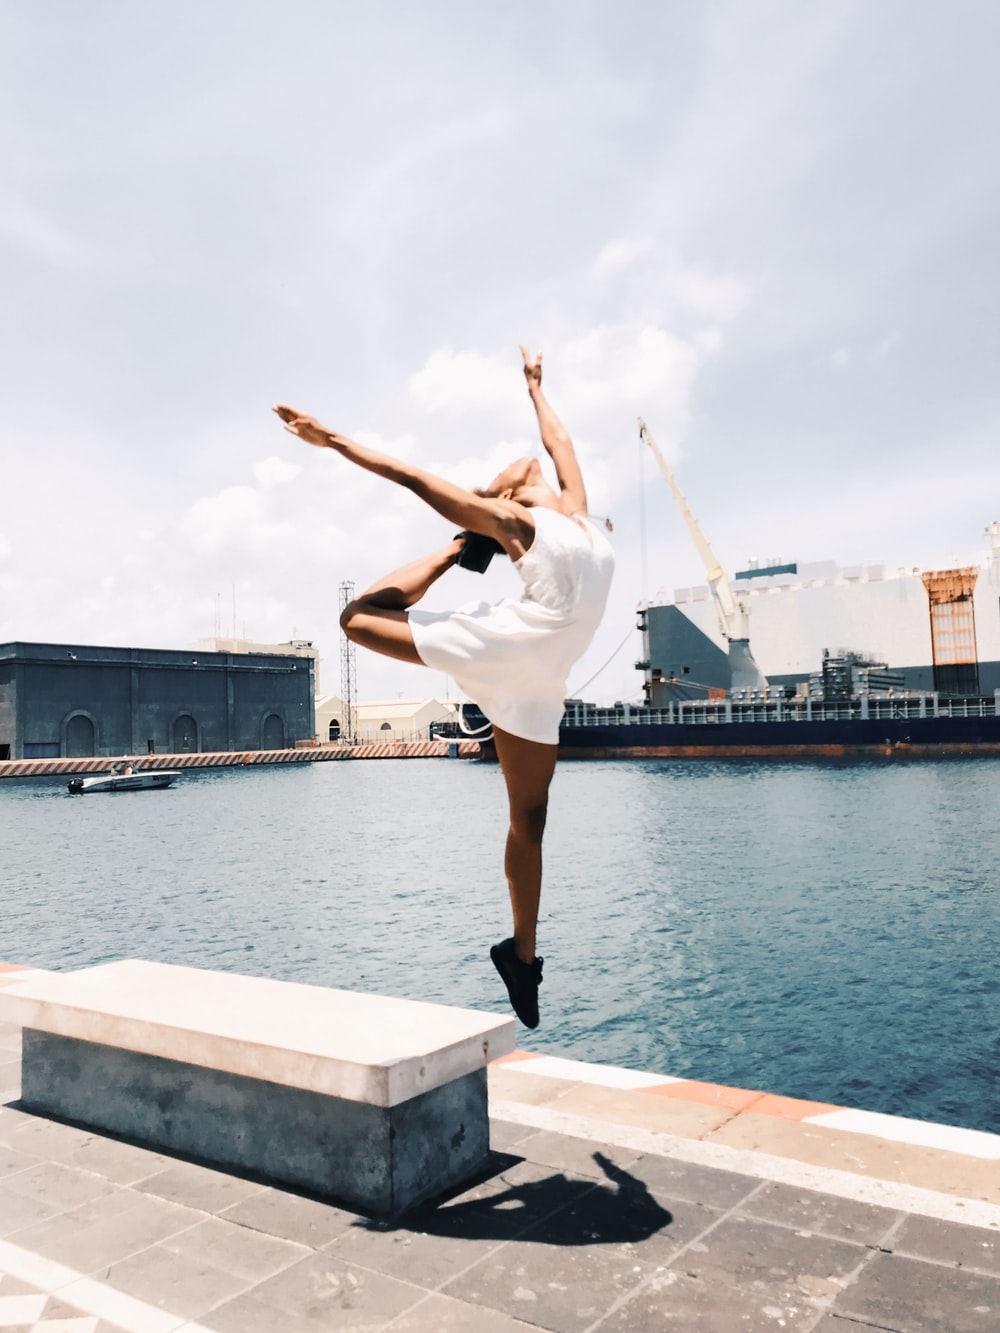 woman jumping in mid-air near body of water during daytime